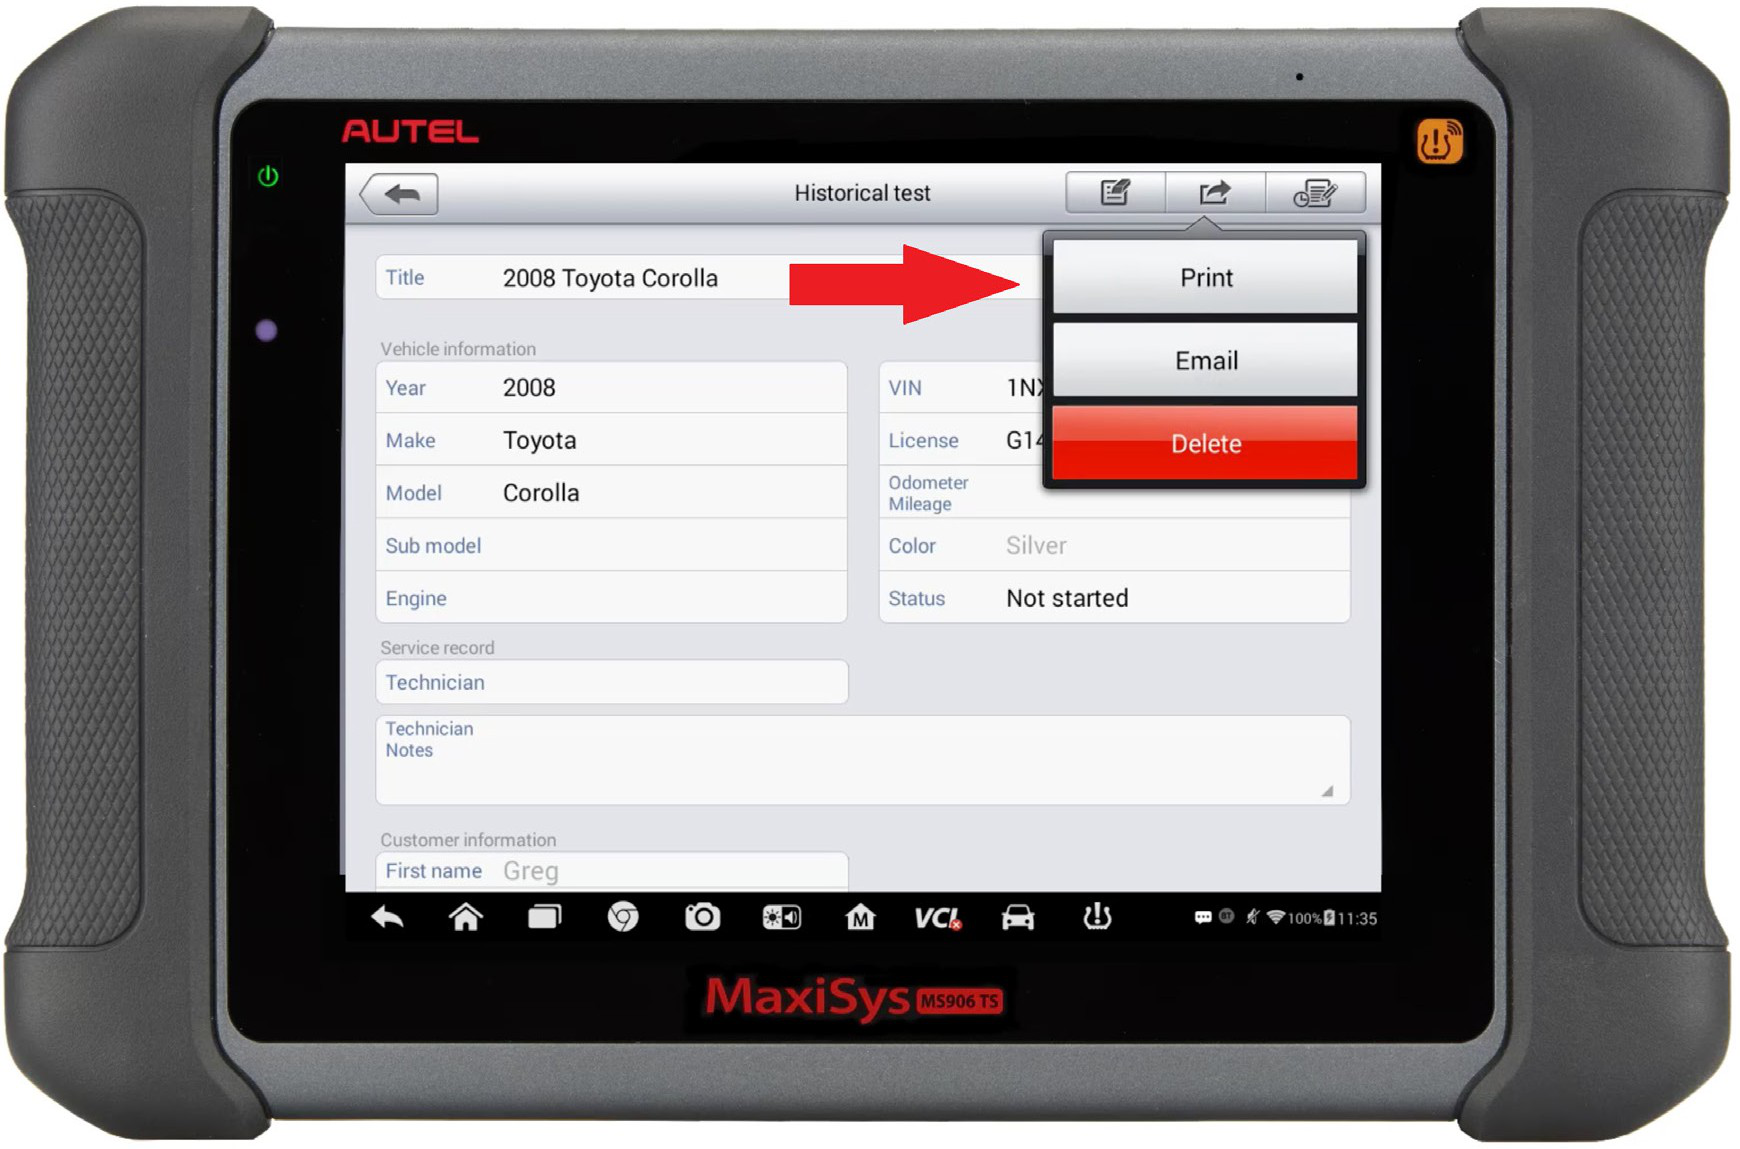 Autel-MaxiSYS-tablet-WIFI-PRINTING-Instruction-Guide-13